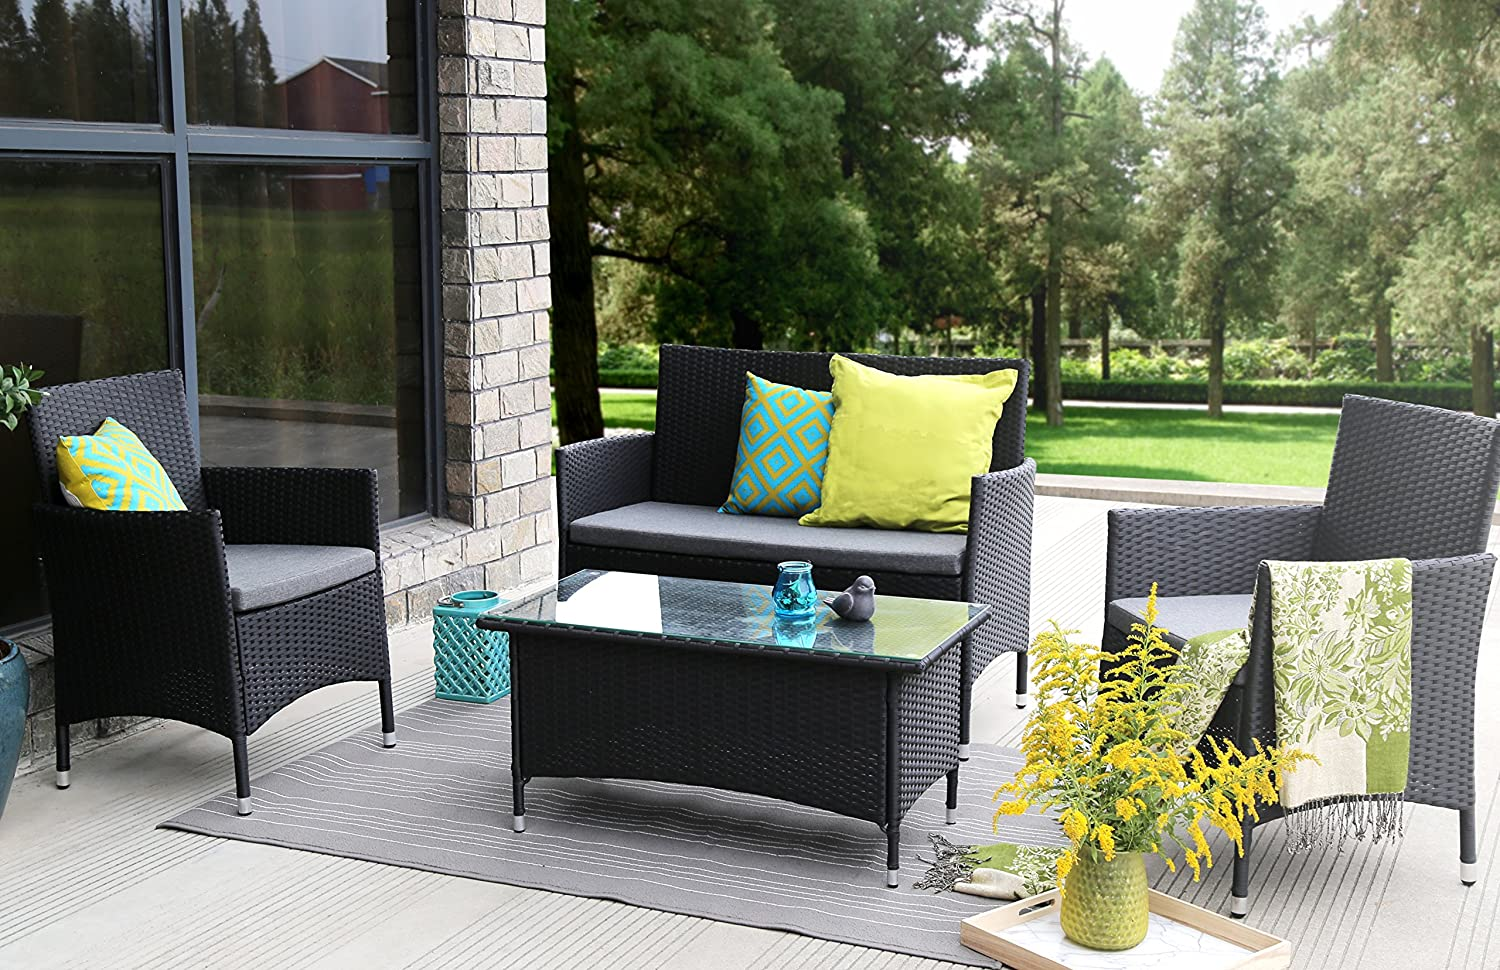 chairs to full wicker brick round composite and ideas table small pattern produce design with fence wall fascinating perfect a furniture combination rattan patio